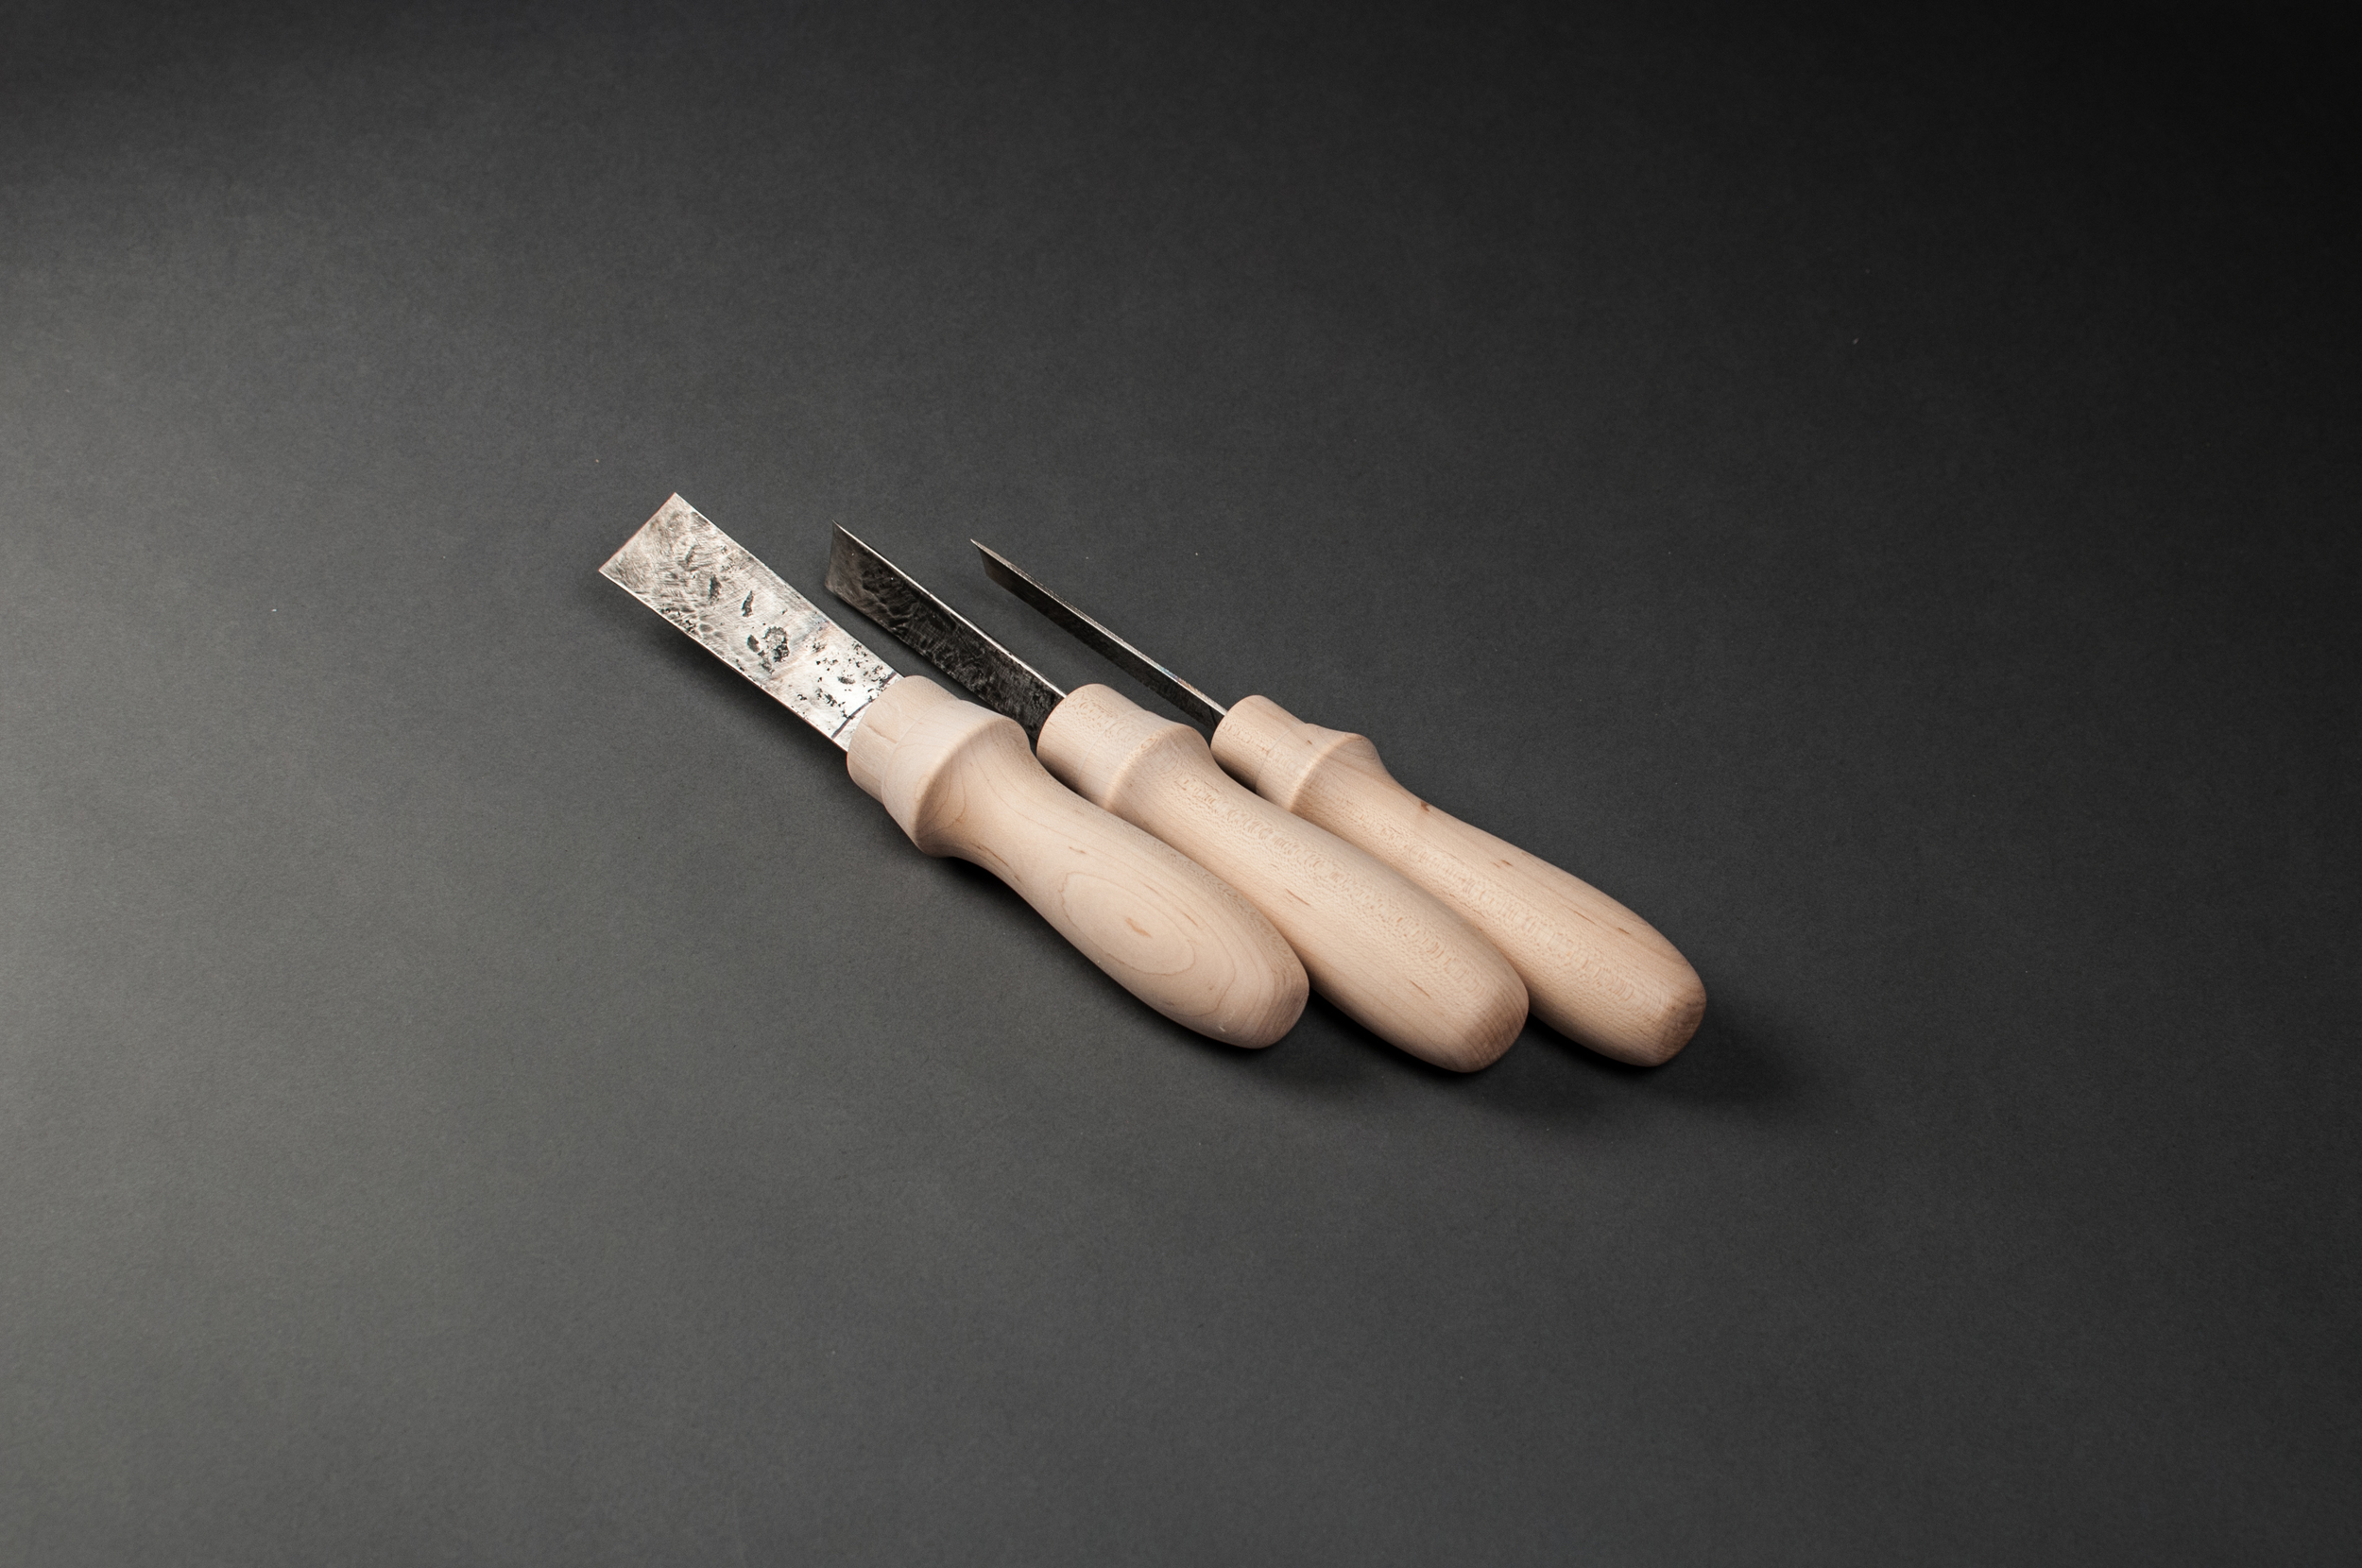 Hand-turned maple handles. McCurdy acquired a set of hand forged chisels and gauges in Bali in 2011. She made handles for three of them in 2016 to demonstrate capability on a wood lathe.